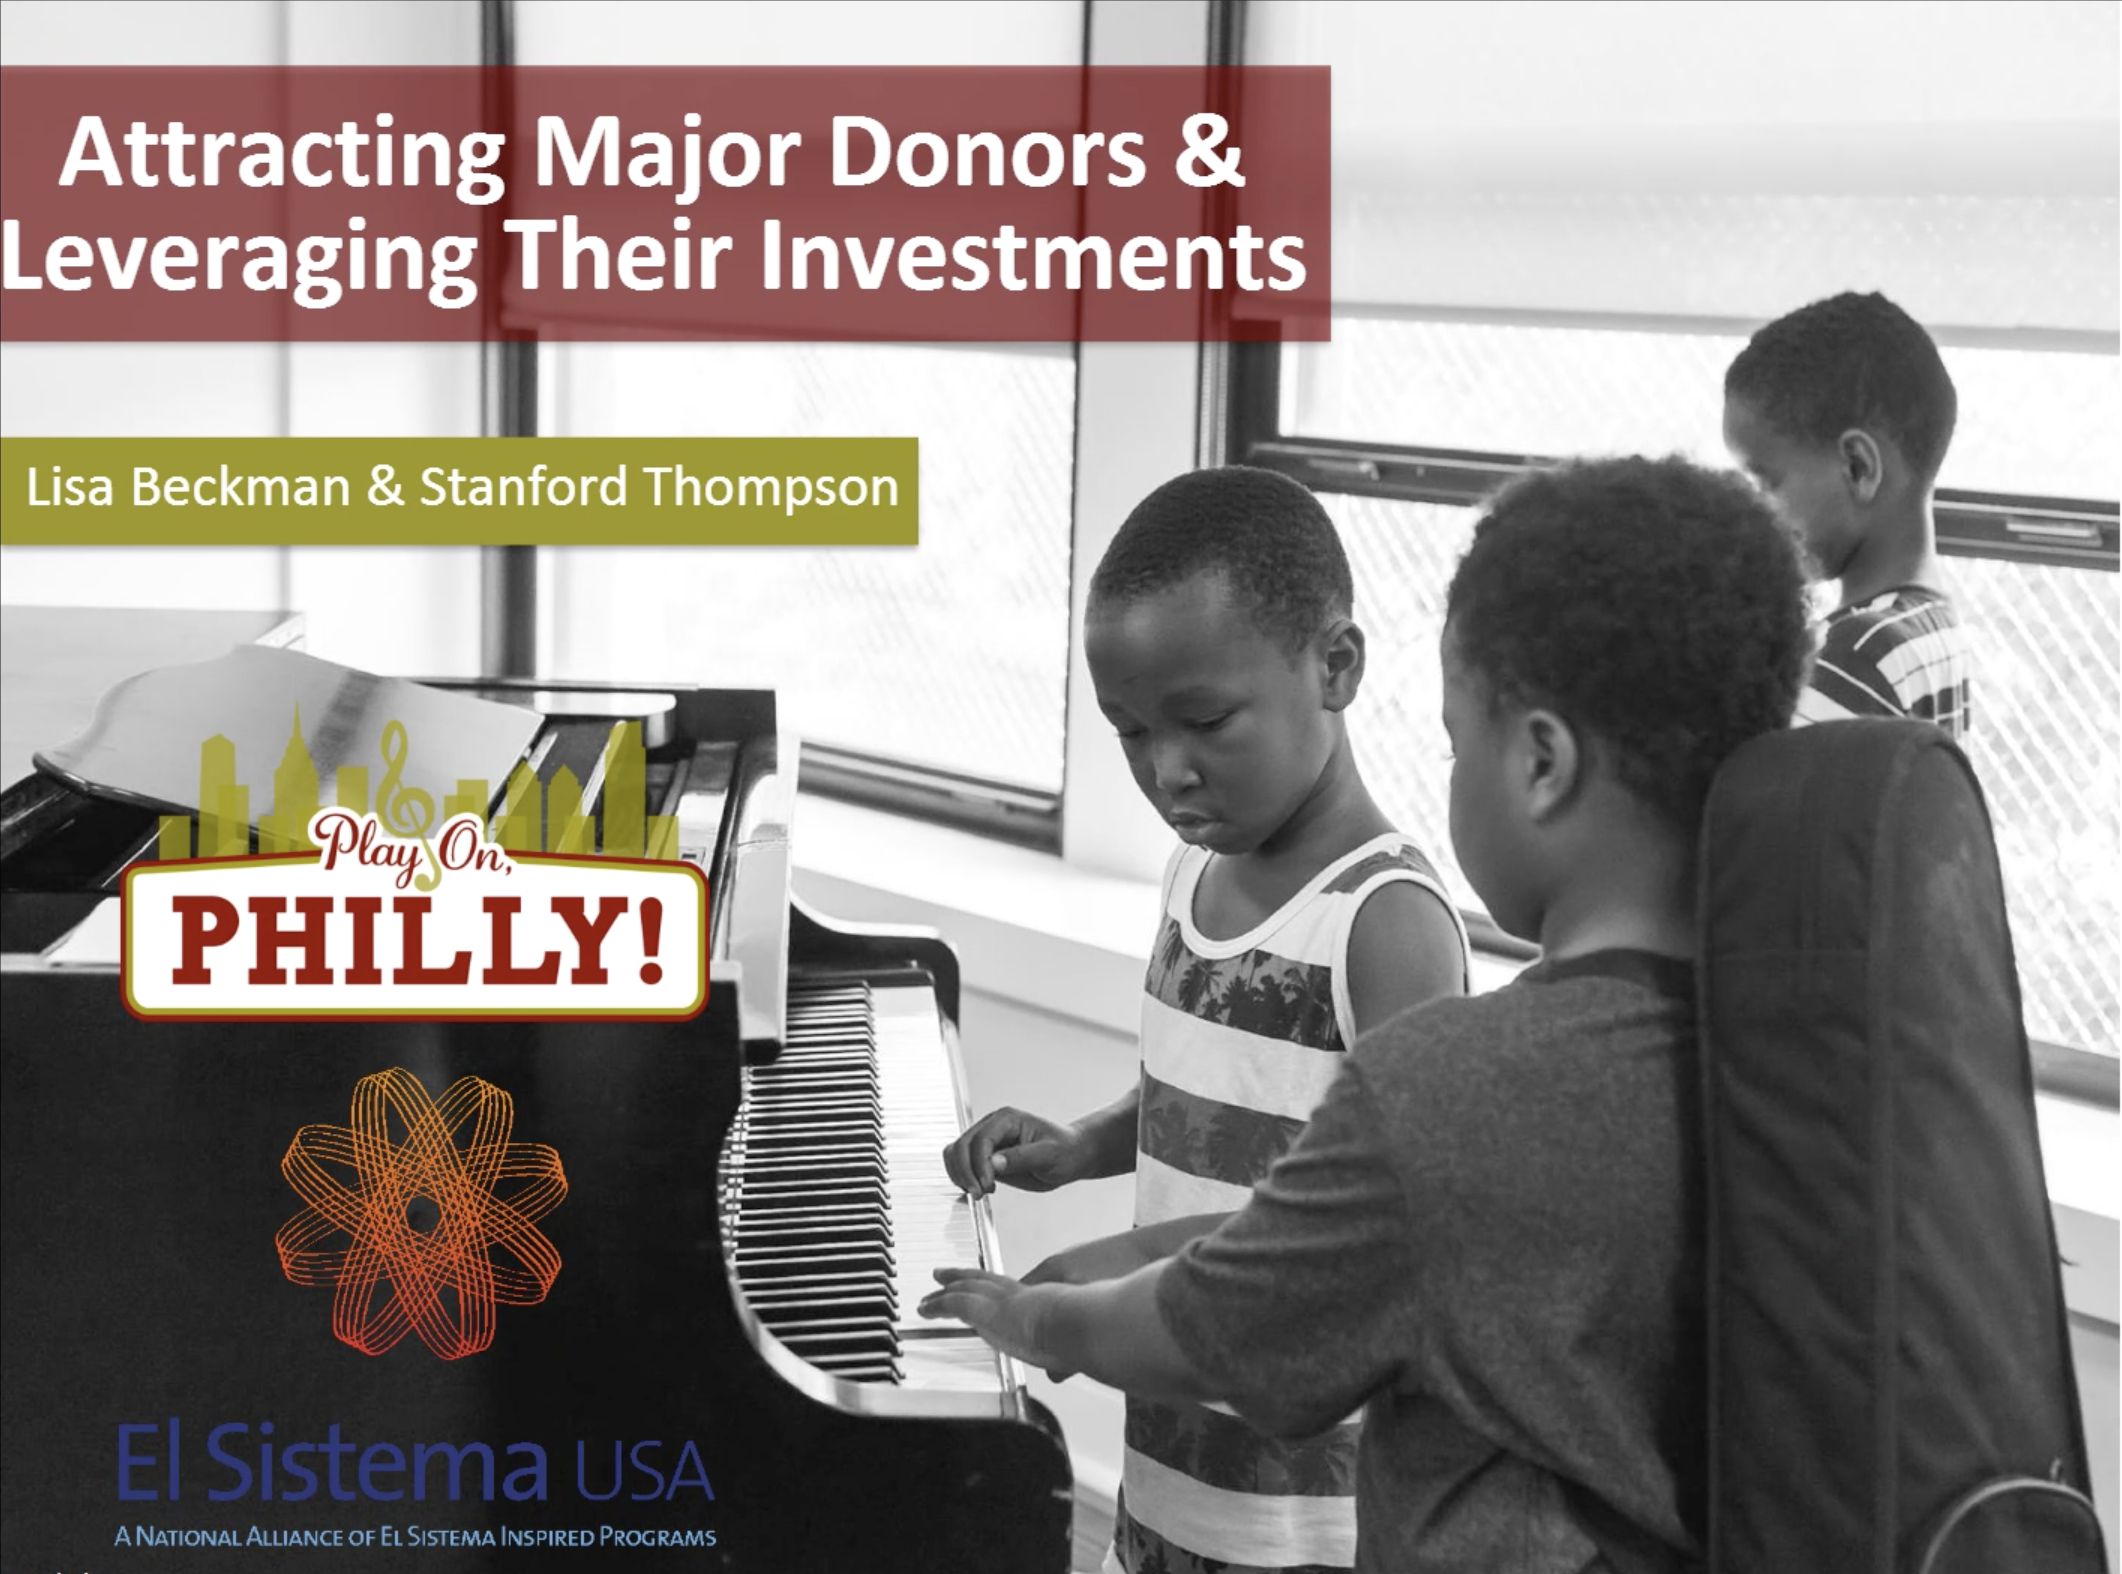 Webinar: Lisa Beckman & Stanford Thompson On Attracting Major Donors & Leveraging Their Investments – November 2017